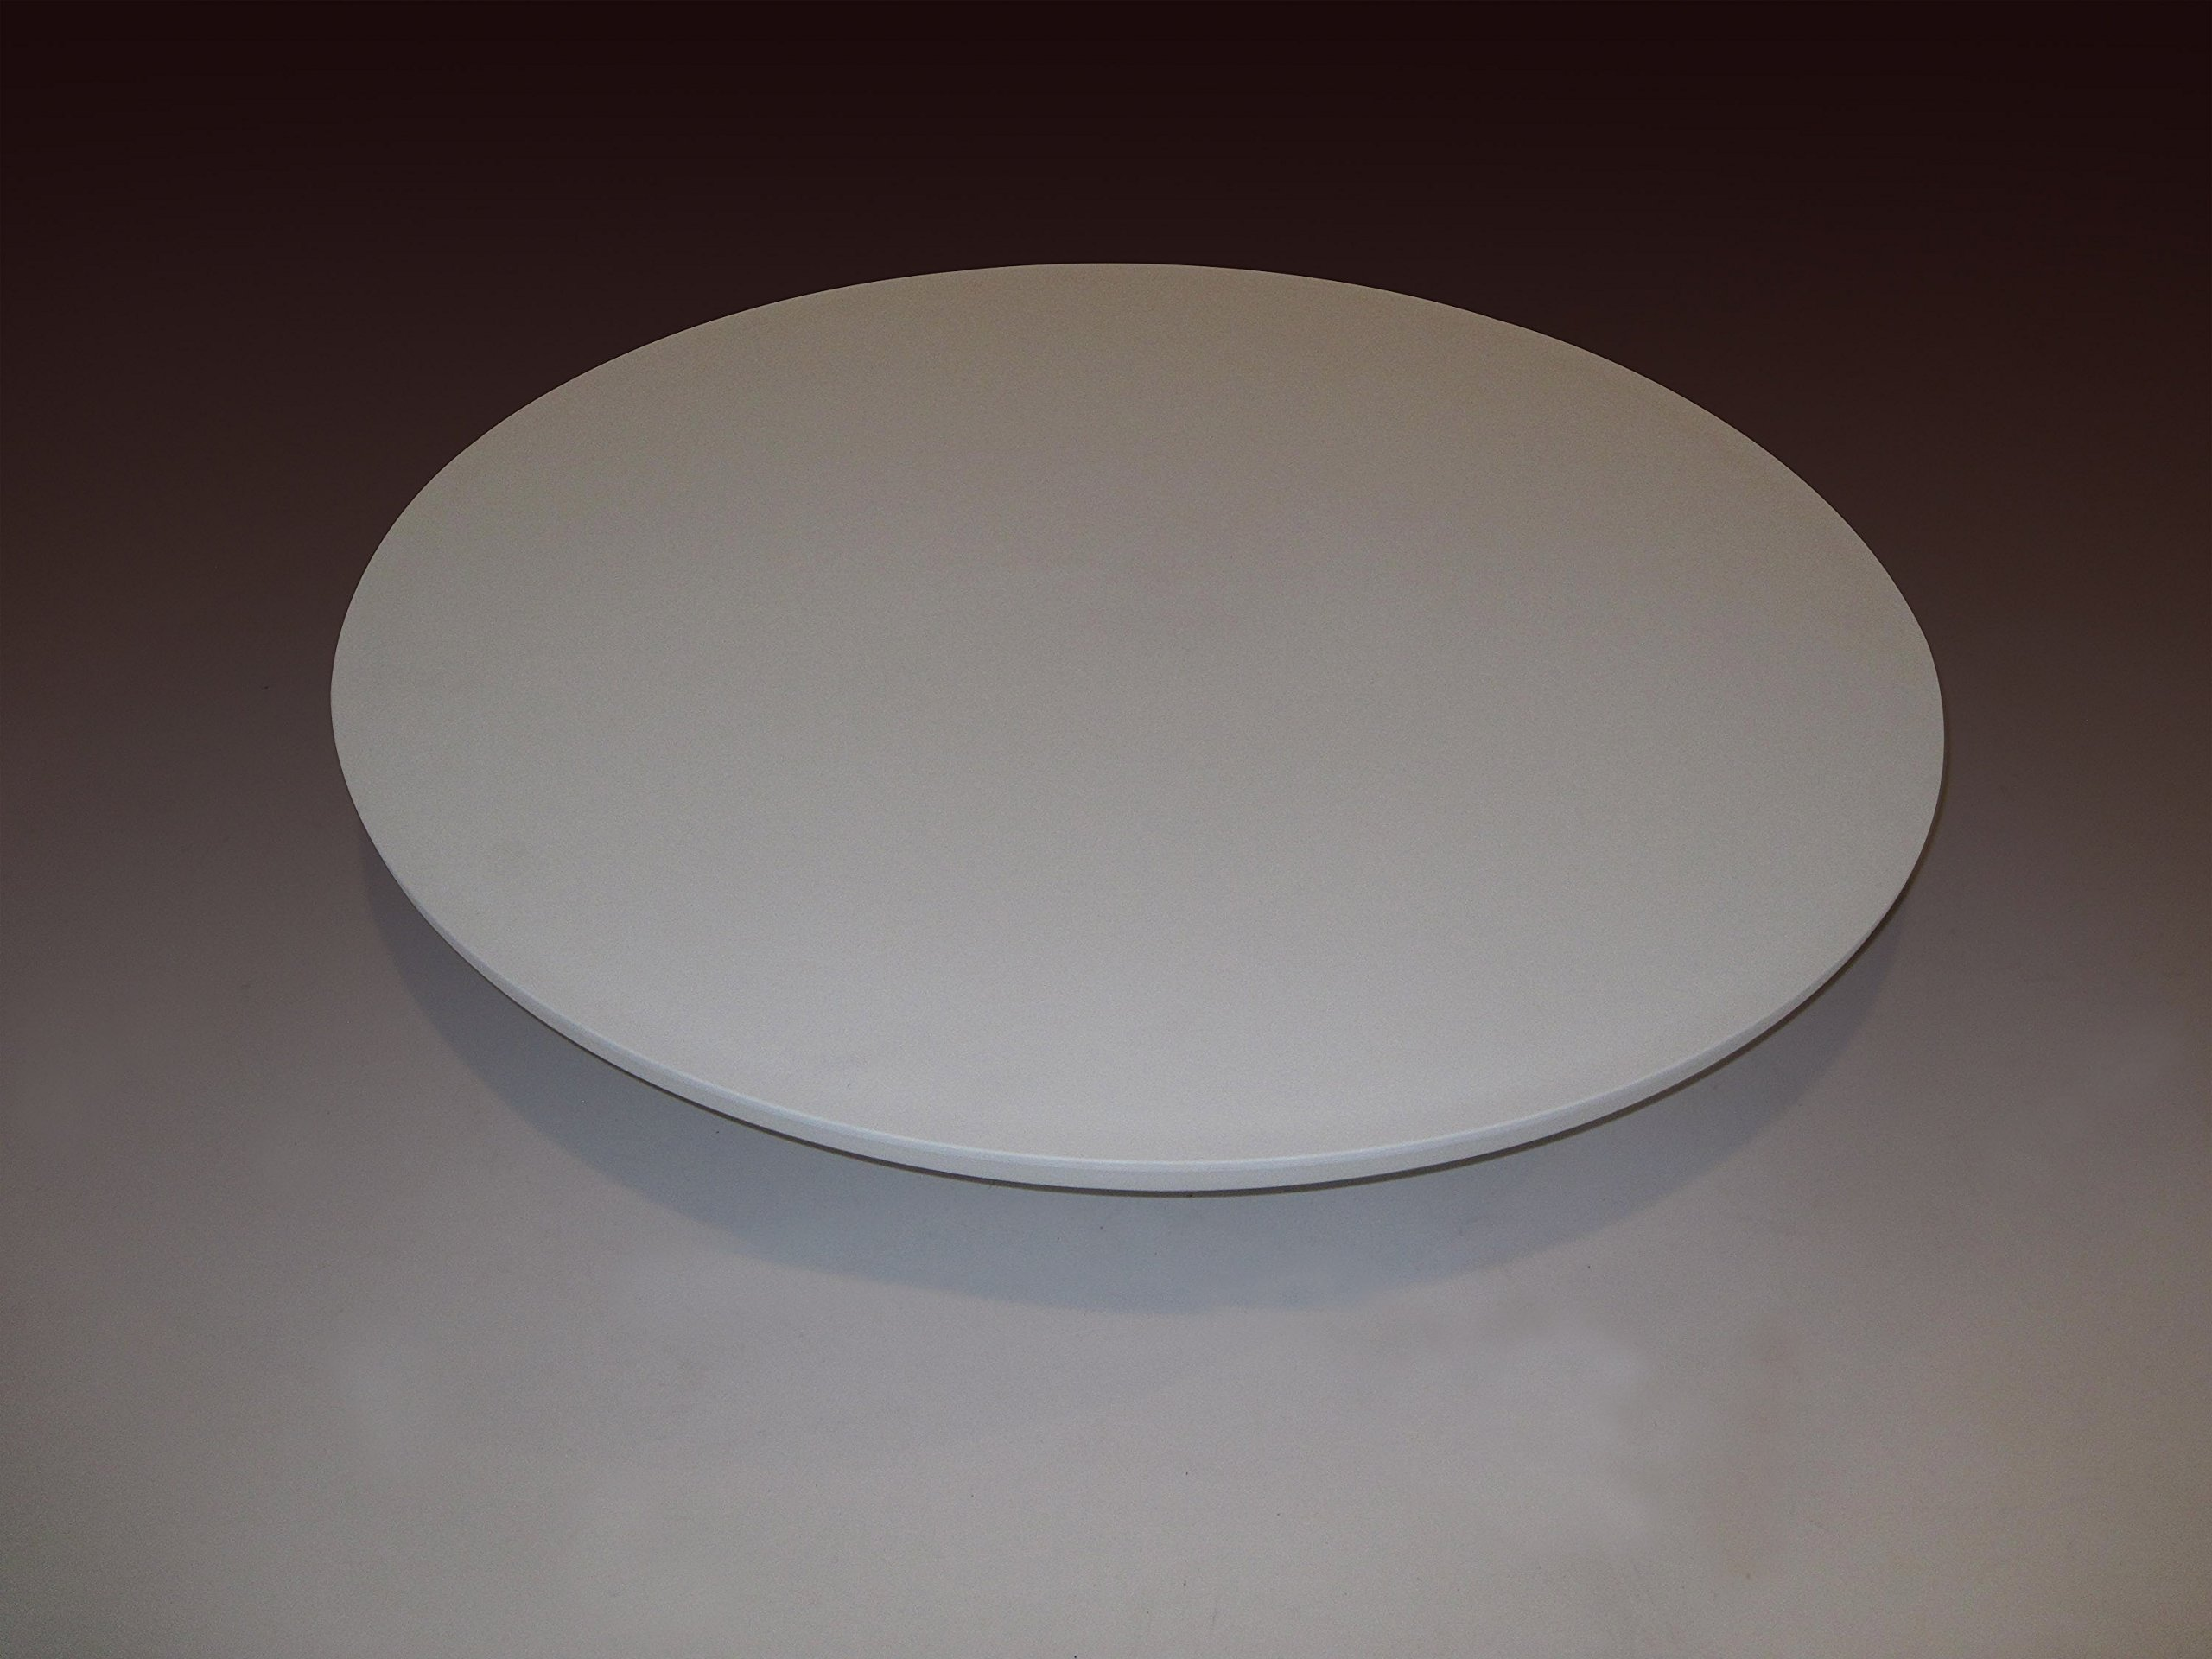 28'' White Round Commercial Grade Table top, Outdoor/Indoor, technopolymer Fiberglass Reinforced, for Restaurant and Catering - can be adapted to Most Leg Systems. Heavy Duty by DSN tables by Drake